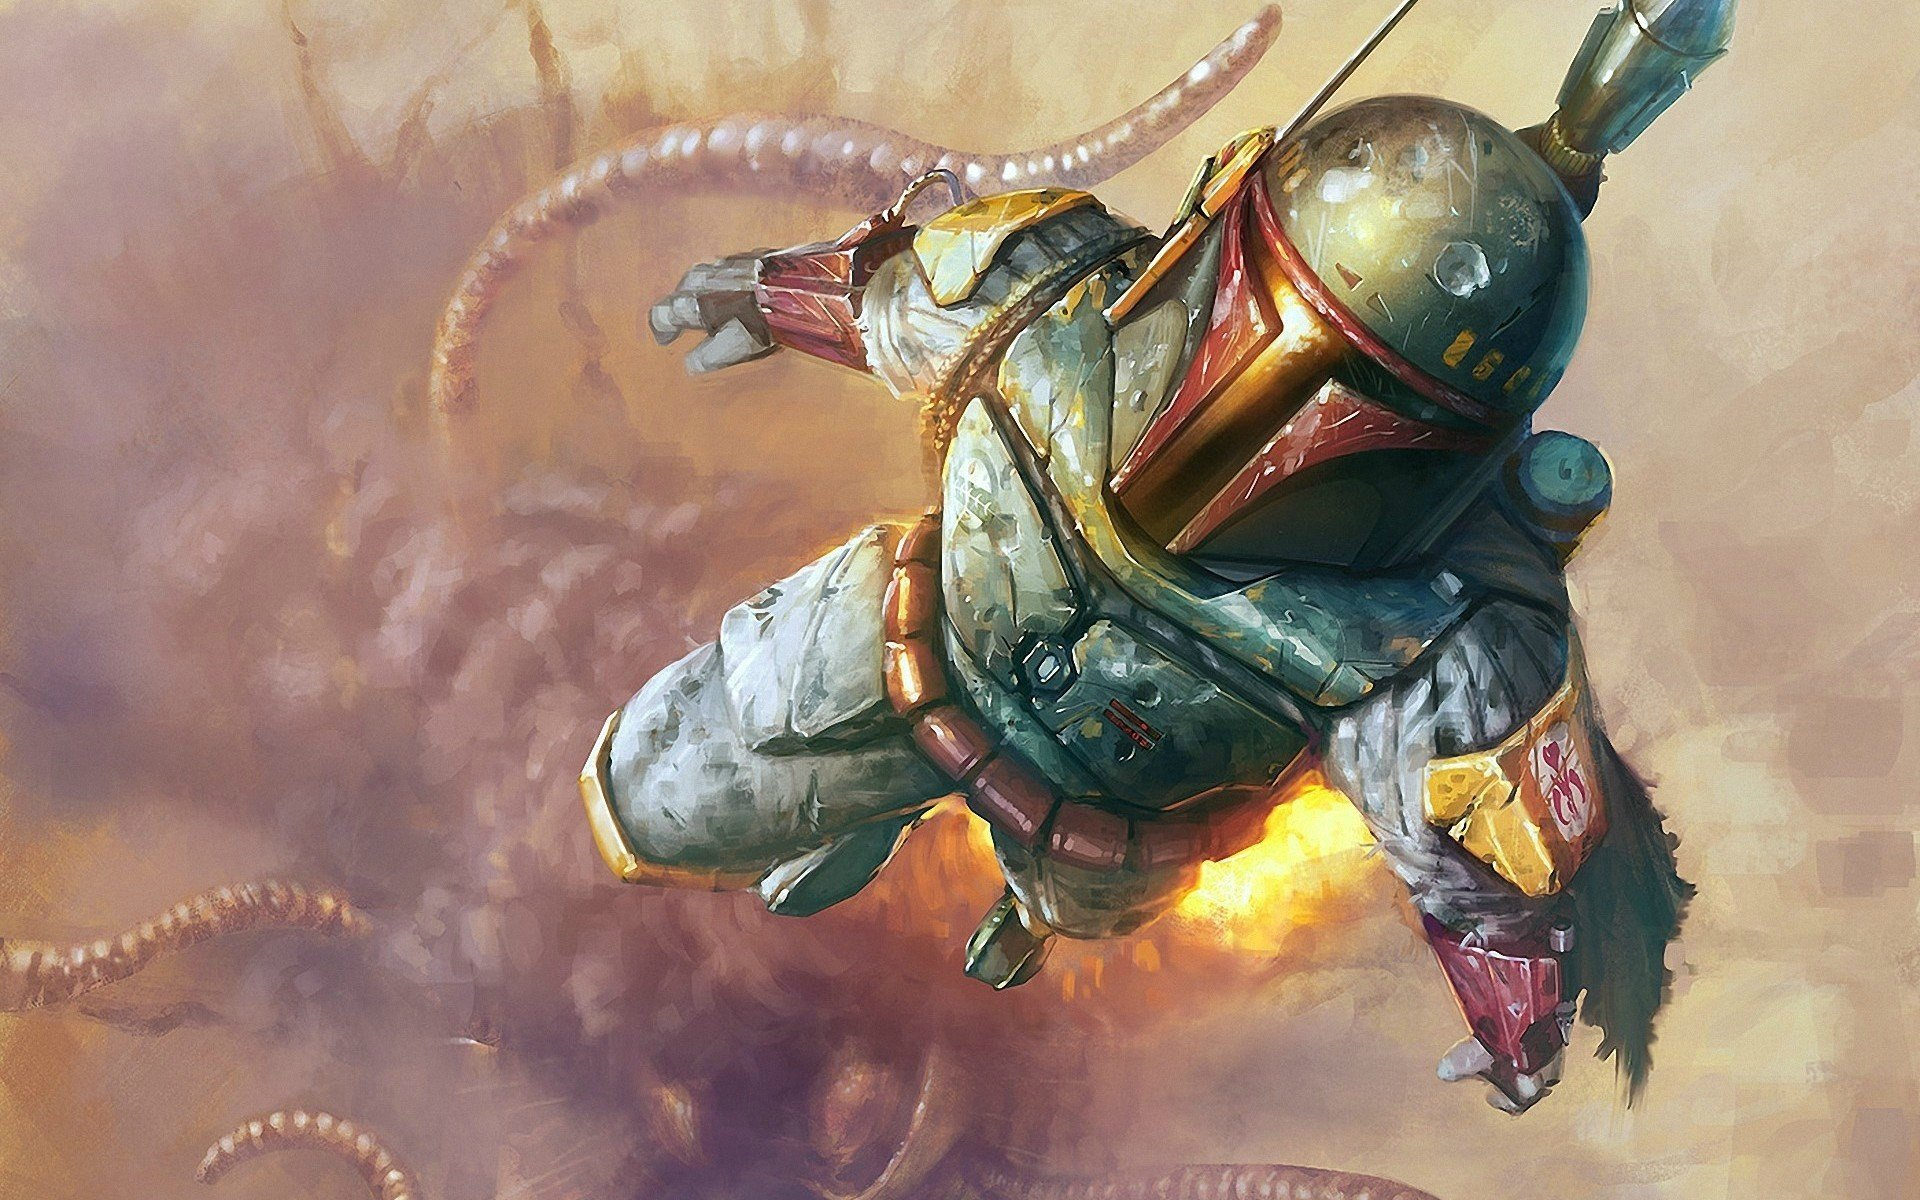 Boba Fett HD Wallpaper Star Wars Artwork Wallpaper Desktop Picture 1920x1200